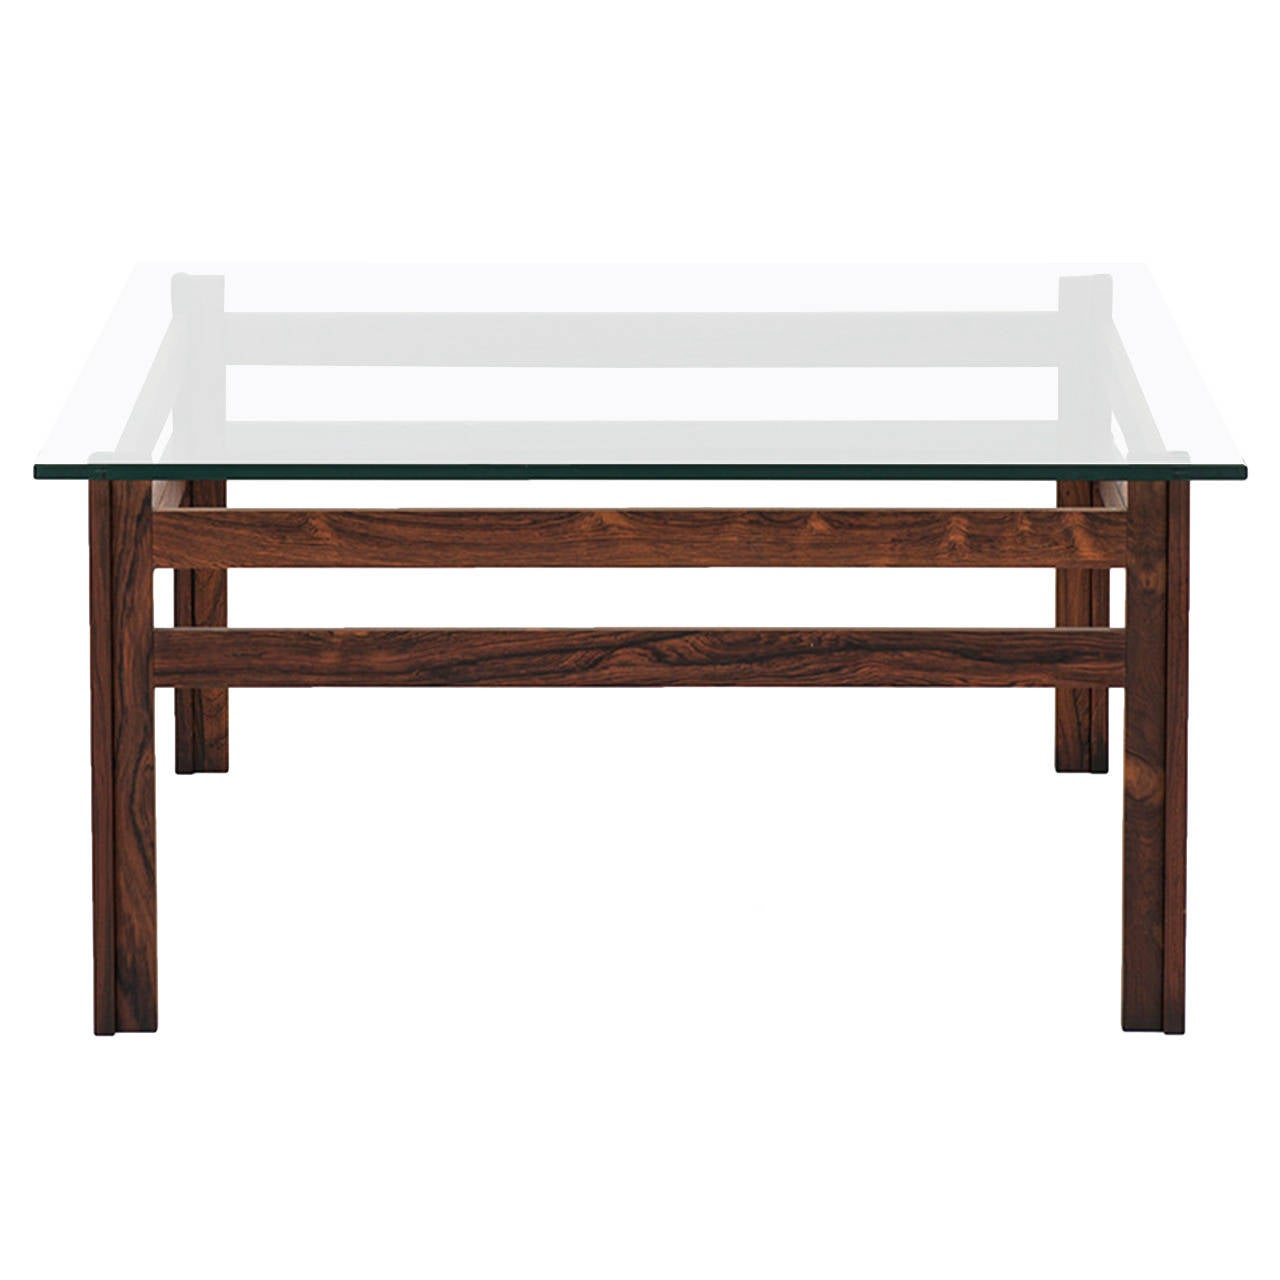 Mid century coffee table in rosewood with thick glass top